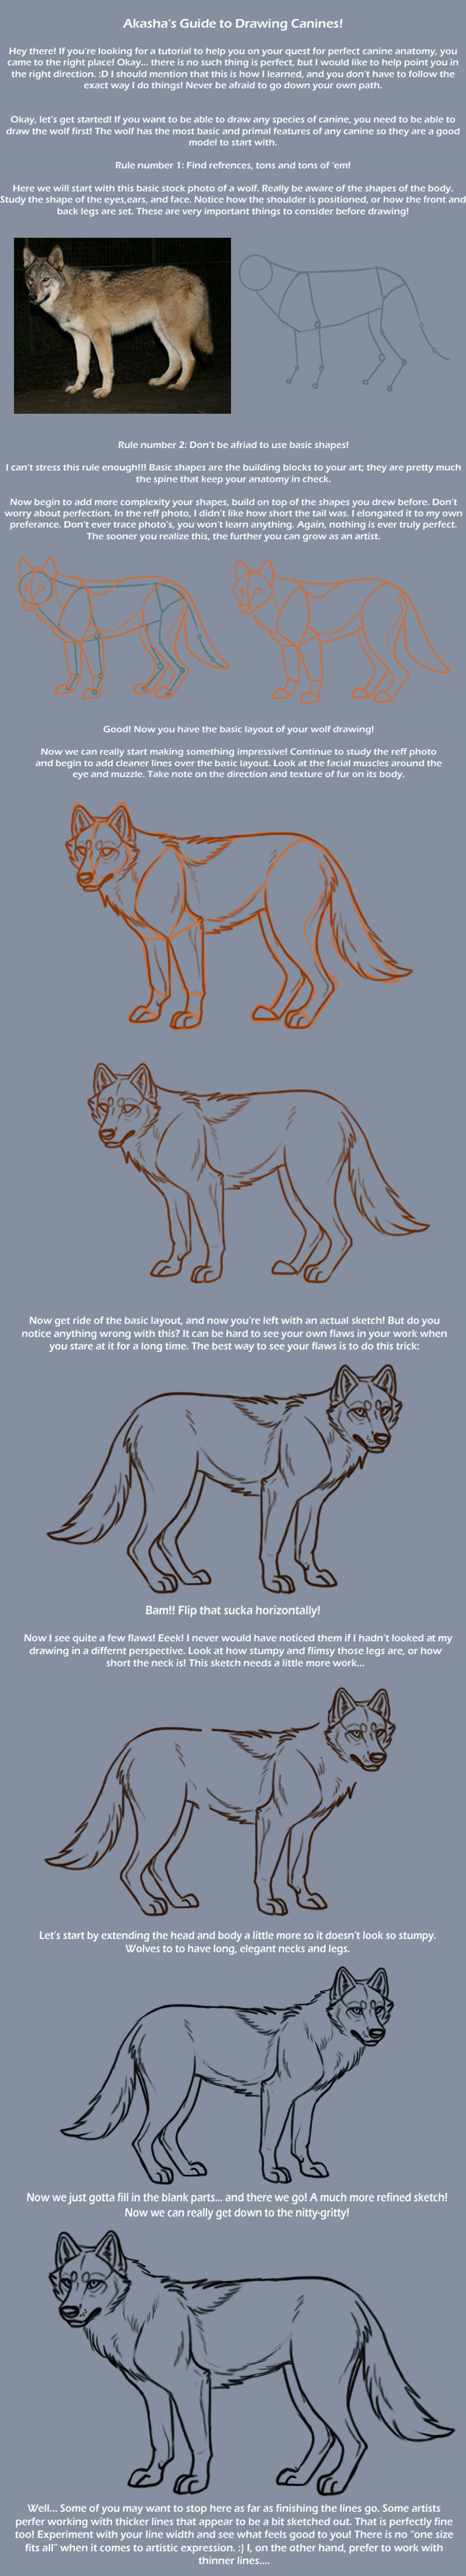 Canine Anatomy and Lineart Tutorial Pt.1 by Sedillio on DeviantArt